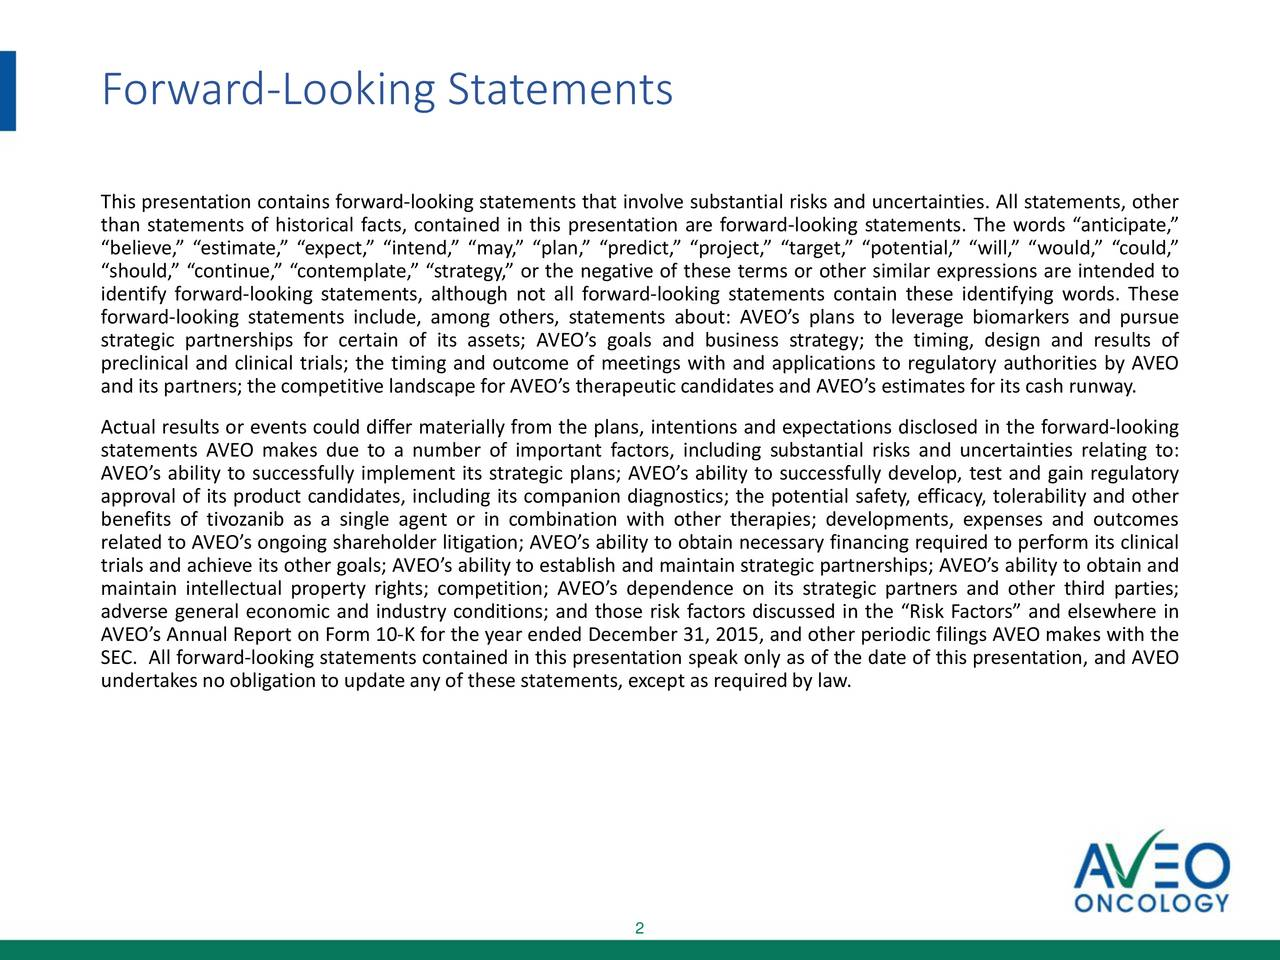 This presentation contains forward-looking statements that involve substantial risks and uncertainties. All statements, other than statements of historical facts, contained in this presentation are forward-looking statements. The words anticipate, believe, estimate, expect, intend, may, plan, predict, project, target, potential, will, would, could, should, continue, contemplate, strategy, or the negative of these terms or other similar expressions are intended to identify forward-looking statements, although not all forward-looking statements contain these identifying words. These forward-looking statements include, among others, statements about: AVEOs plans to leverage biomarkers and pursue strategic partnerships for certain of its assets; AVEOs goals and business strategy; the timing, design and results of preclinical and clinical trials; the timing and outcome of meetings with and applications to regulatory authorities by AVEO and its partners; the competitive landscape for AVEOs therapeutic candidates and AVEOs estimates for its cash runway. Actual results or events could differ materially from the plans, intentions and expectations disclosed in the forward-looking statements AVEO makes due to a number of important factors, including substantial risks and uncertainties relating to: AVEOs ability to successfully implement its strategic plans; AVEOs ability to successfully develop, test and gain regulatory approval of its product candidates, including its companion diagnostics; the potential safety, efficacy, tolerability and other benefits of tivozanib as a single agent or in combination with other therapies; developments, expenses and outcomes related to AVEOs ongoing shareholder litigation; AVEOs ability to obtain necessary financing required to perform its clinical trials and achieve its other goals; AVEOs ability to establish and maintain strategic partnerships; AVEOs ability to obtain and maintain intellectual property rights; competition; AVEOs dependence on its strategic partners and other third parties; adverse general economic and industry conditions; and those risk factors discussed in the Risk Factors and elsewhere in AVEOs Annual Report on Form 10-K for the year ended December 31, 2015, and other periodic filings AVEO makes with the SEC. All forward-looking statements contained in this presentation speak only as of the date of this presentation, and AVEO undertakes no obligation to update any of these statements, except as requiredby law. 2